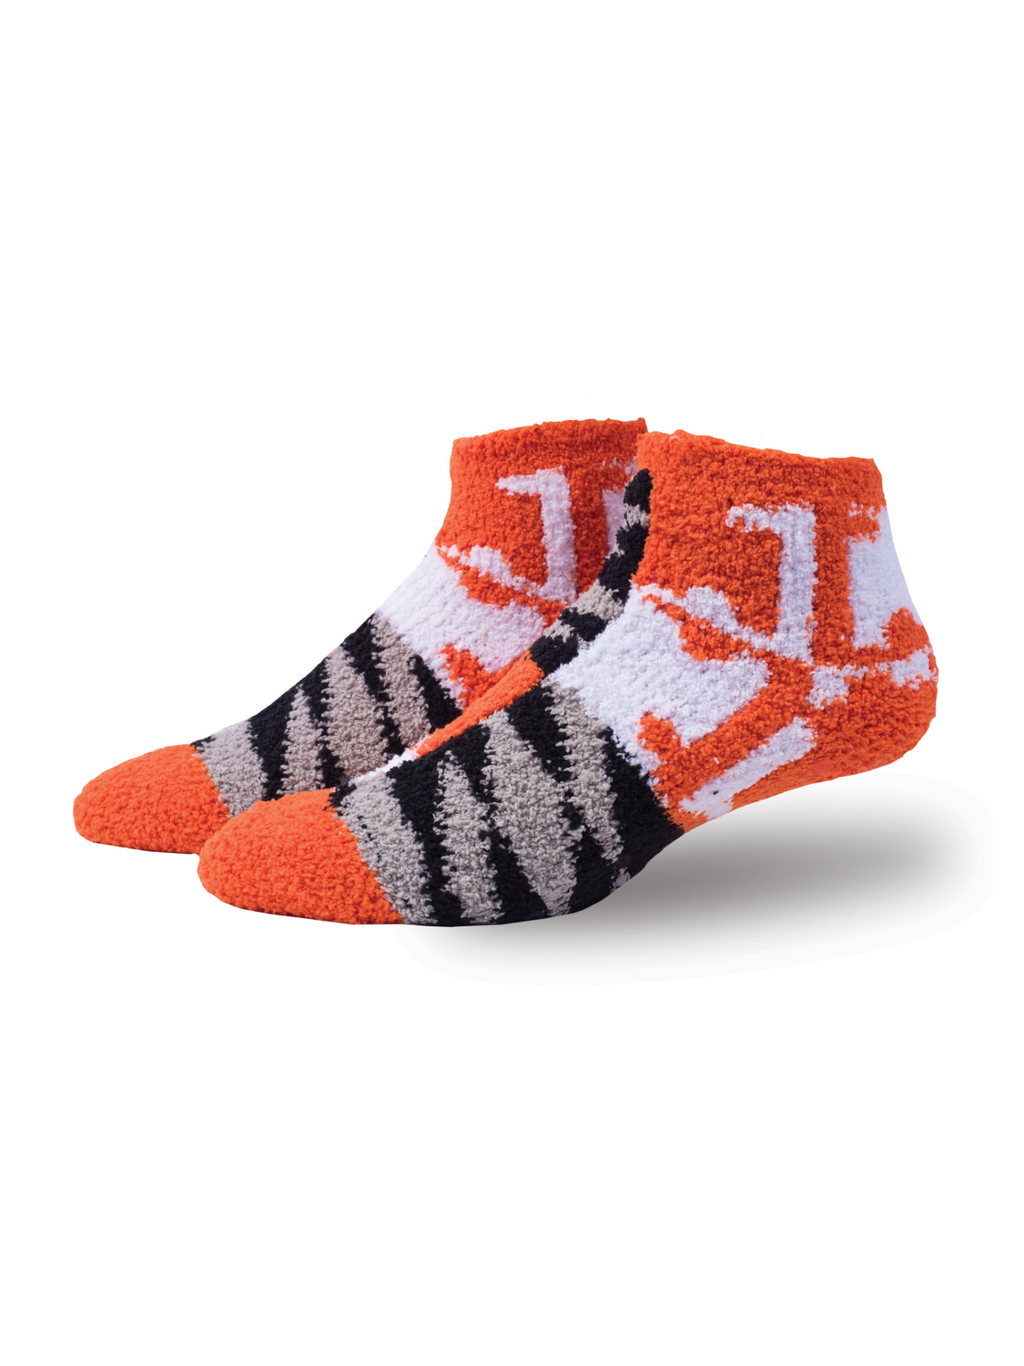 Maryland Orange Sleep Socks